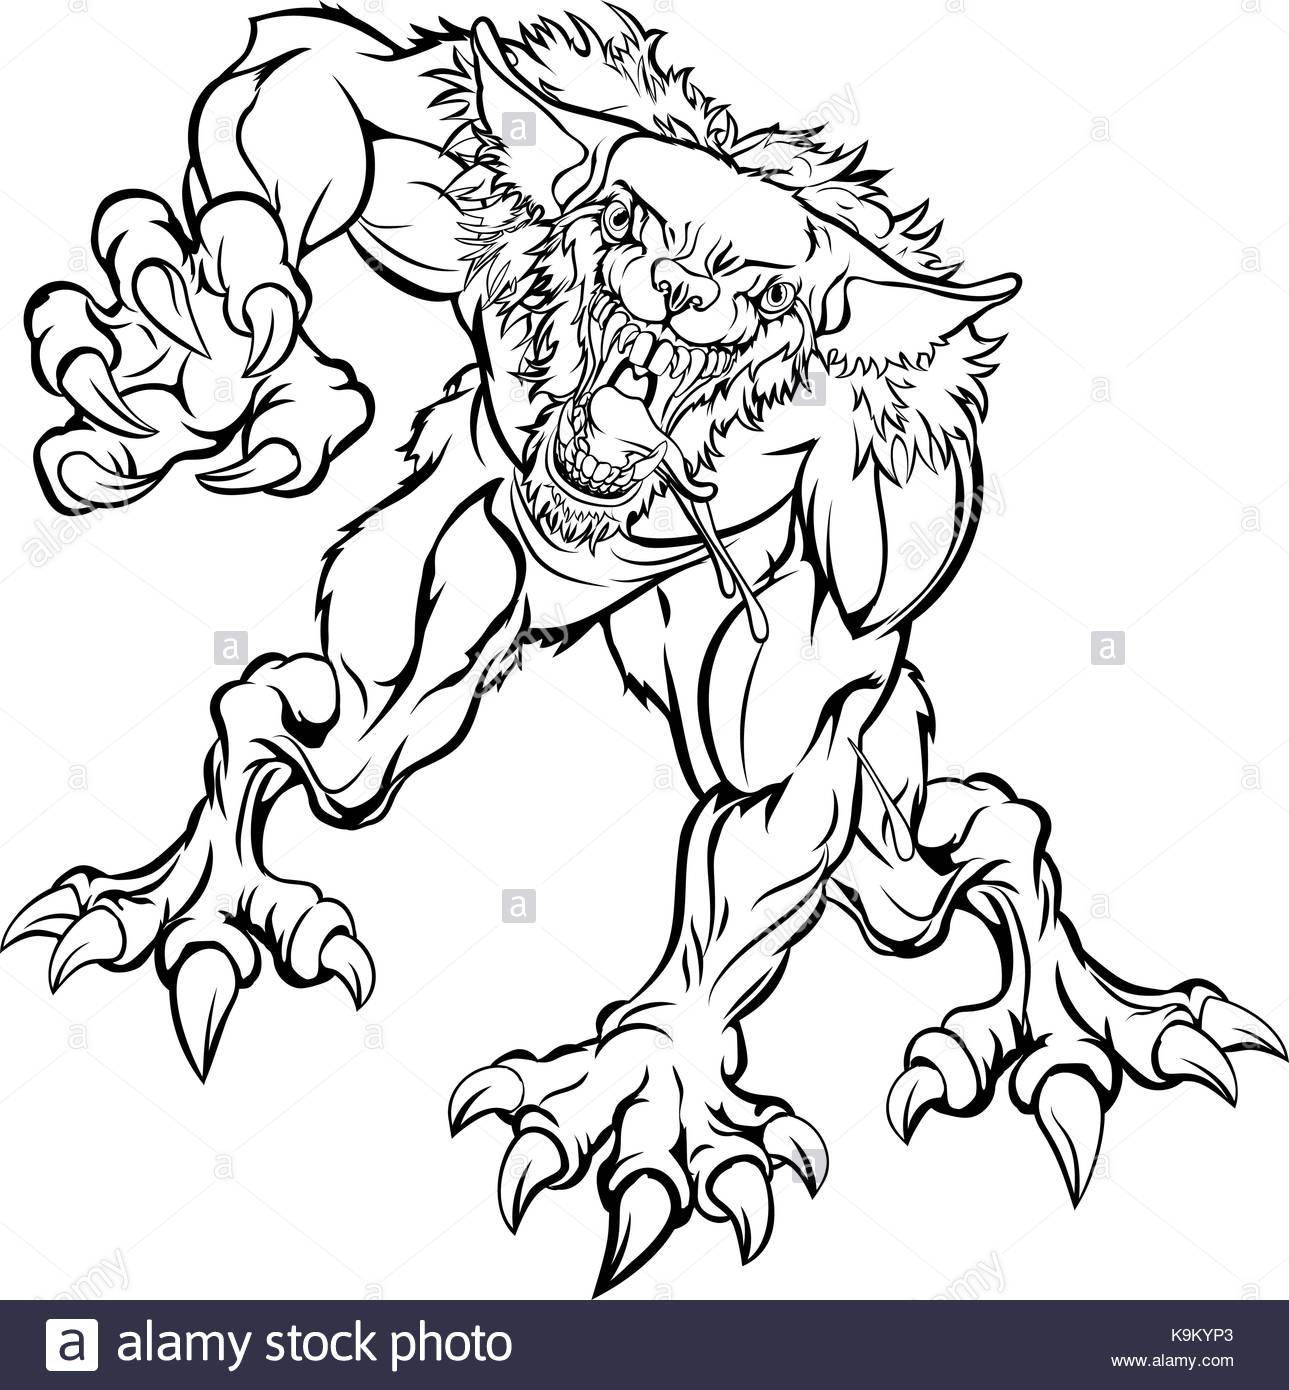 1289x1390 Scary Werewolf Monster Character Stock Vector Art Amp Illustration